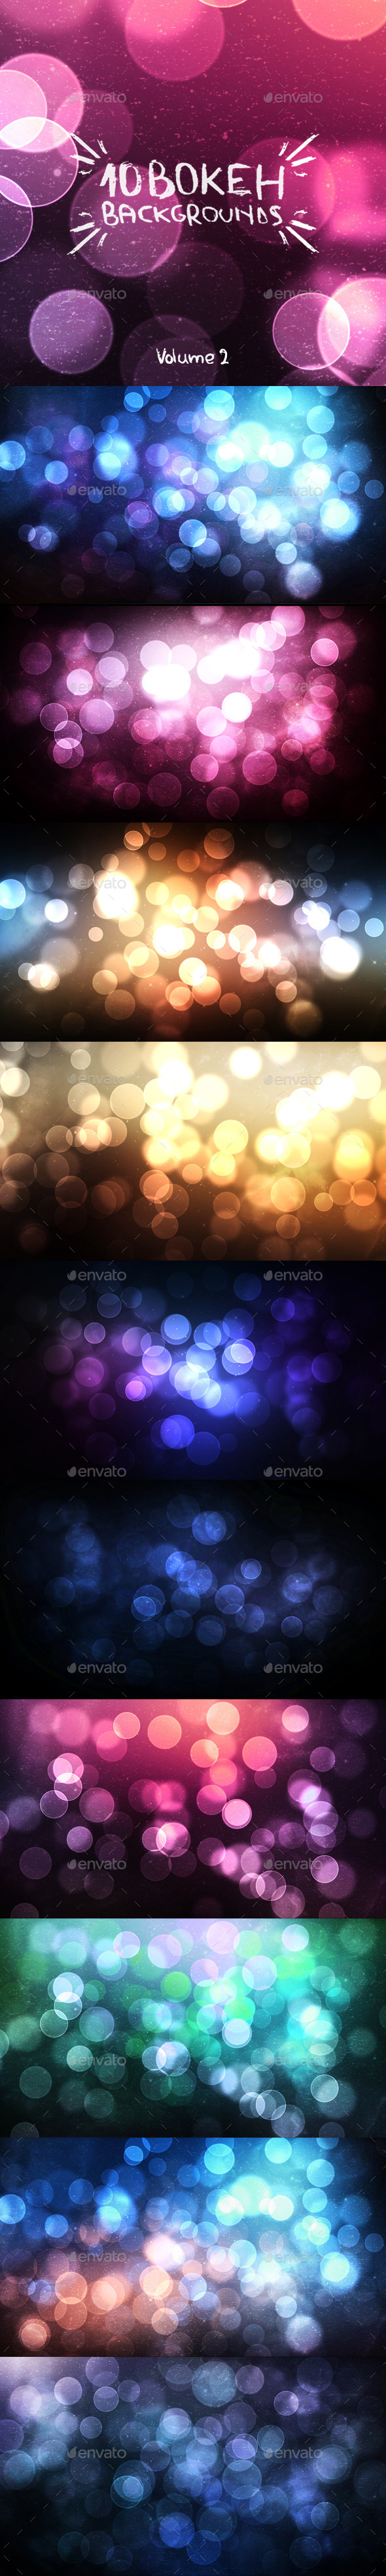 GraphicRiver 10 Bokeh Backgrounds Volume 2 9412590